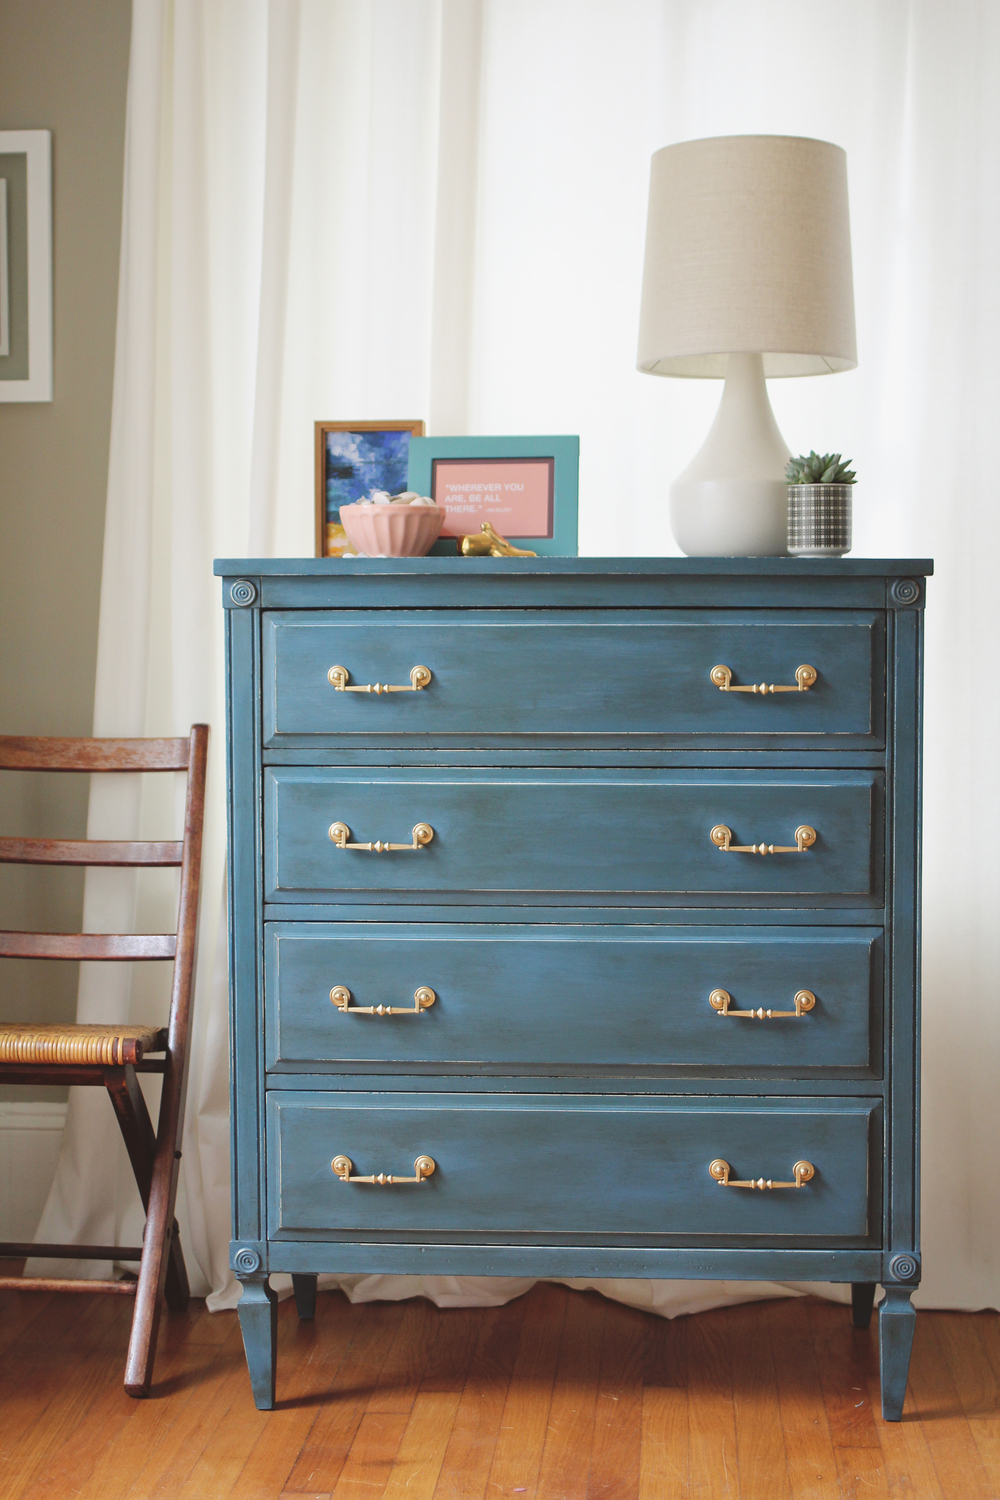 Painted Furniture A Simpler Design A Hub For All Things Creative